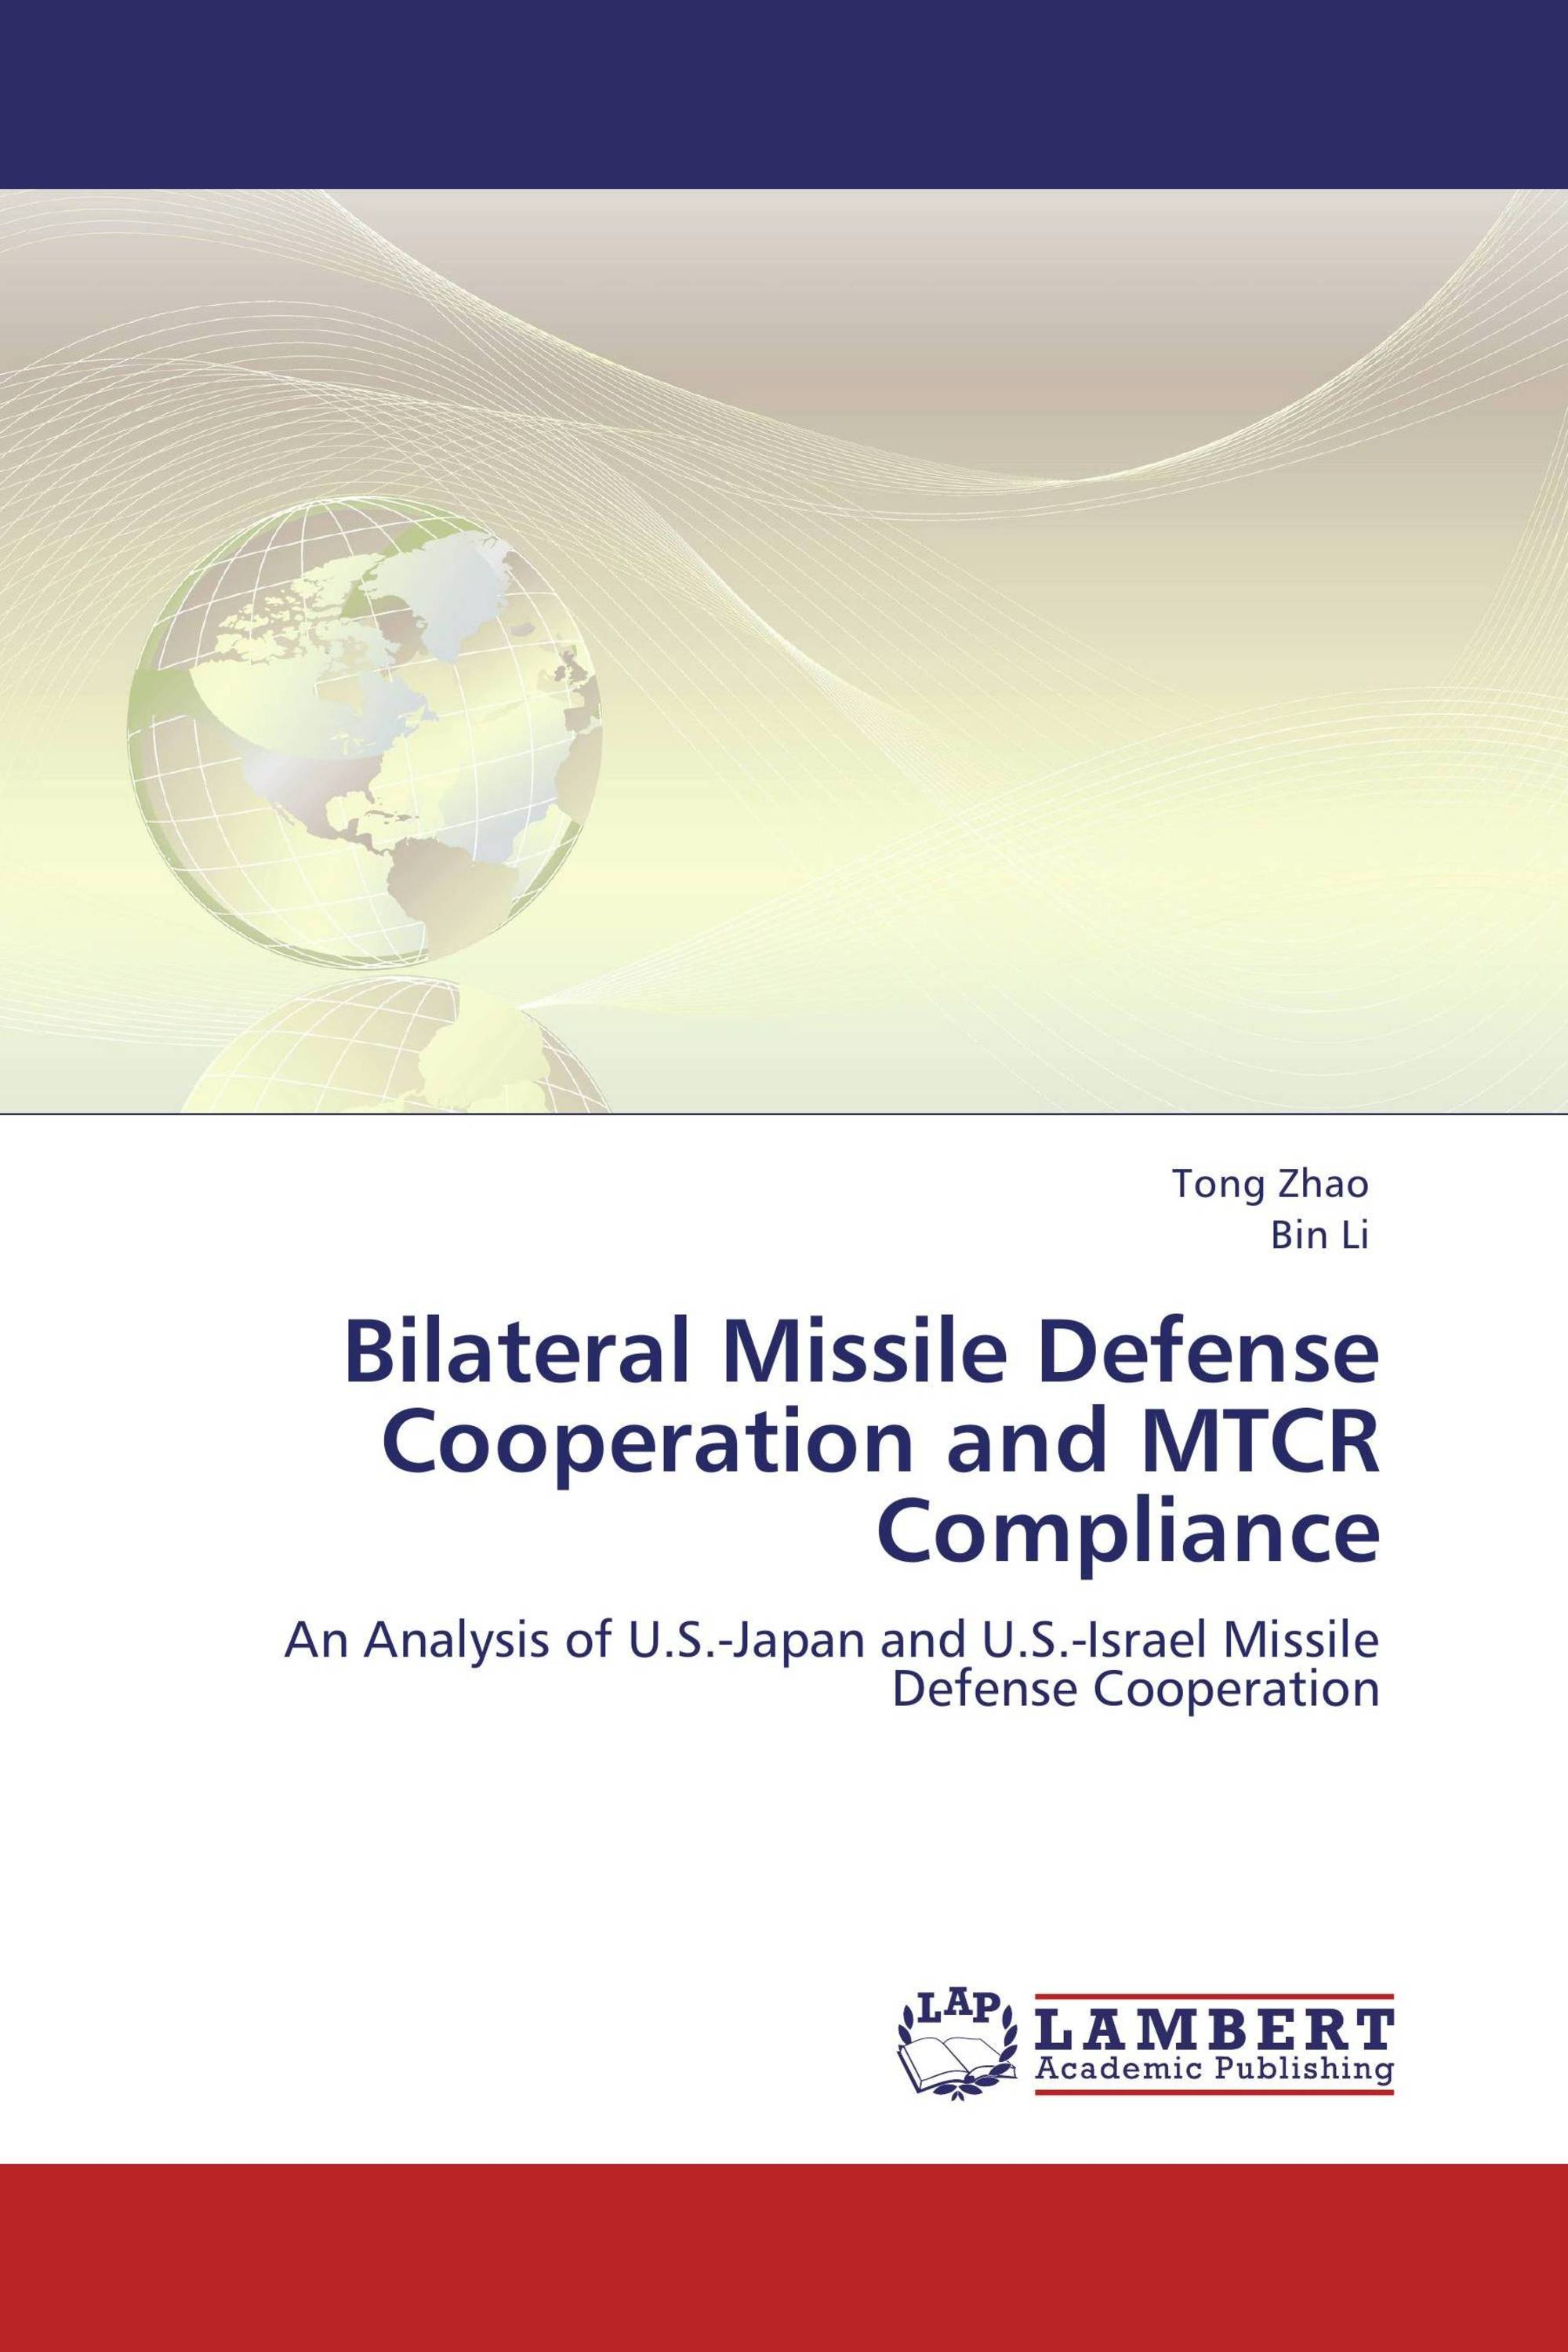 Bilateral Missile Defense Cooperation and MTCR Compliance